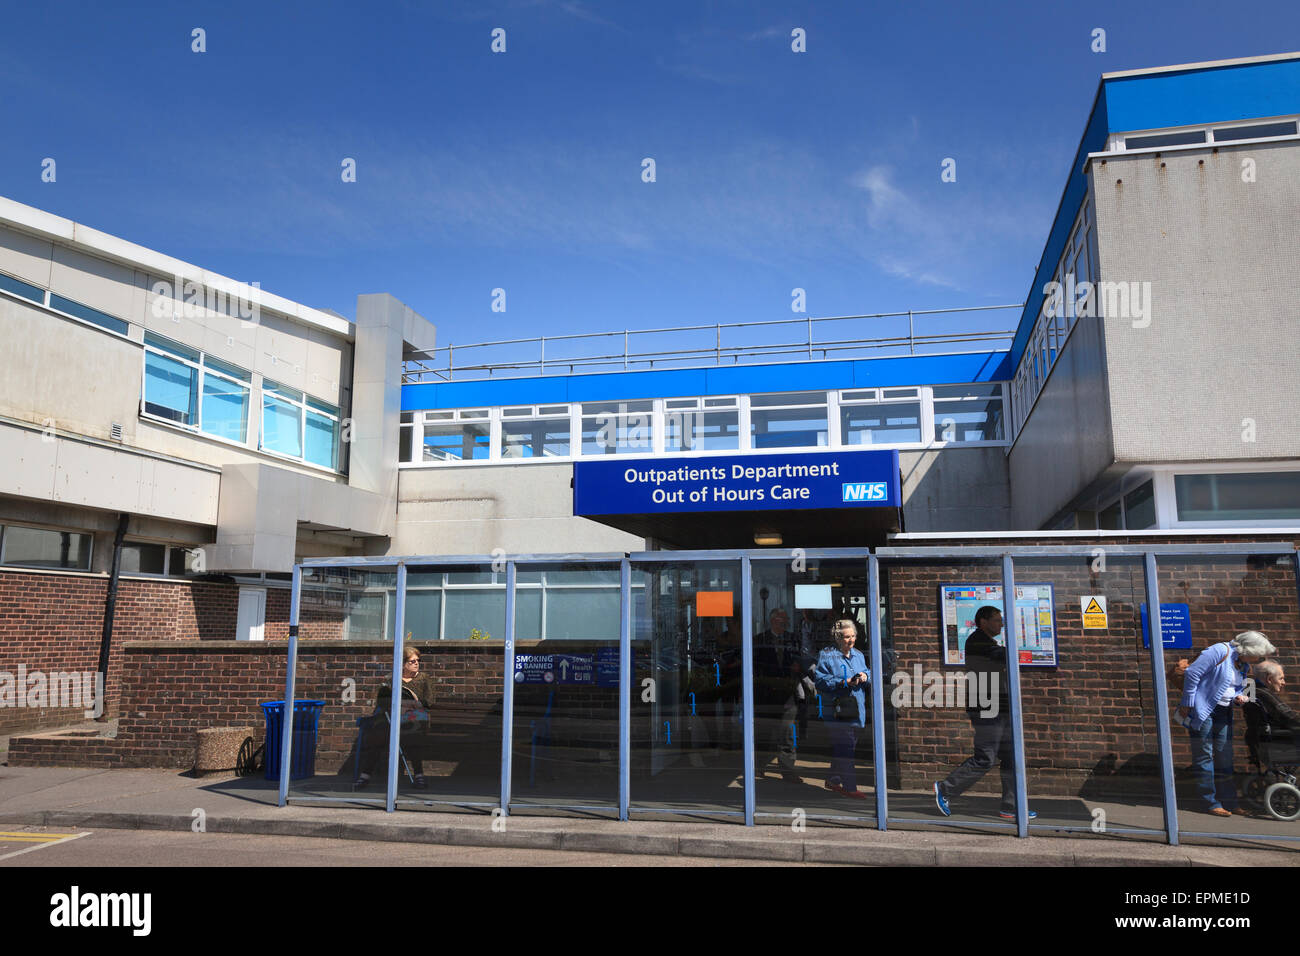 Entrance to outpatients department of St Richards Hospital at Chichester - Stock Image